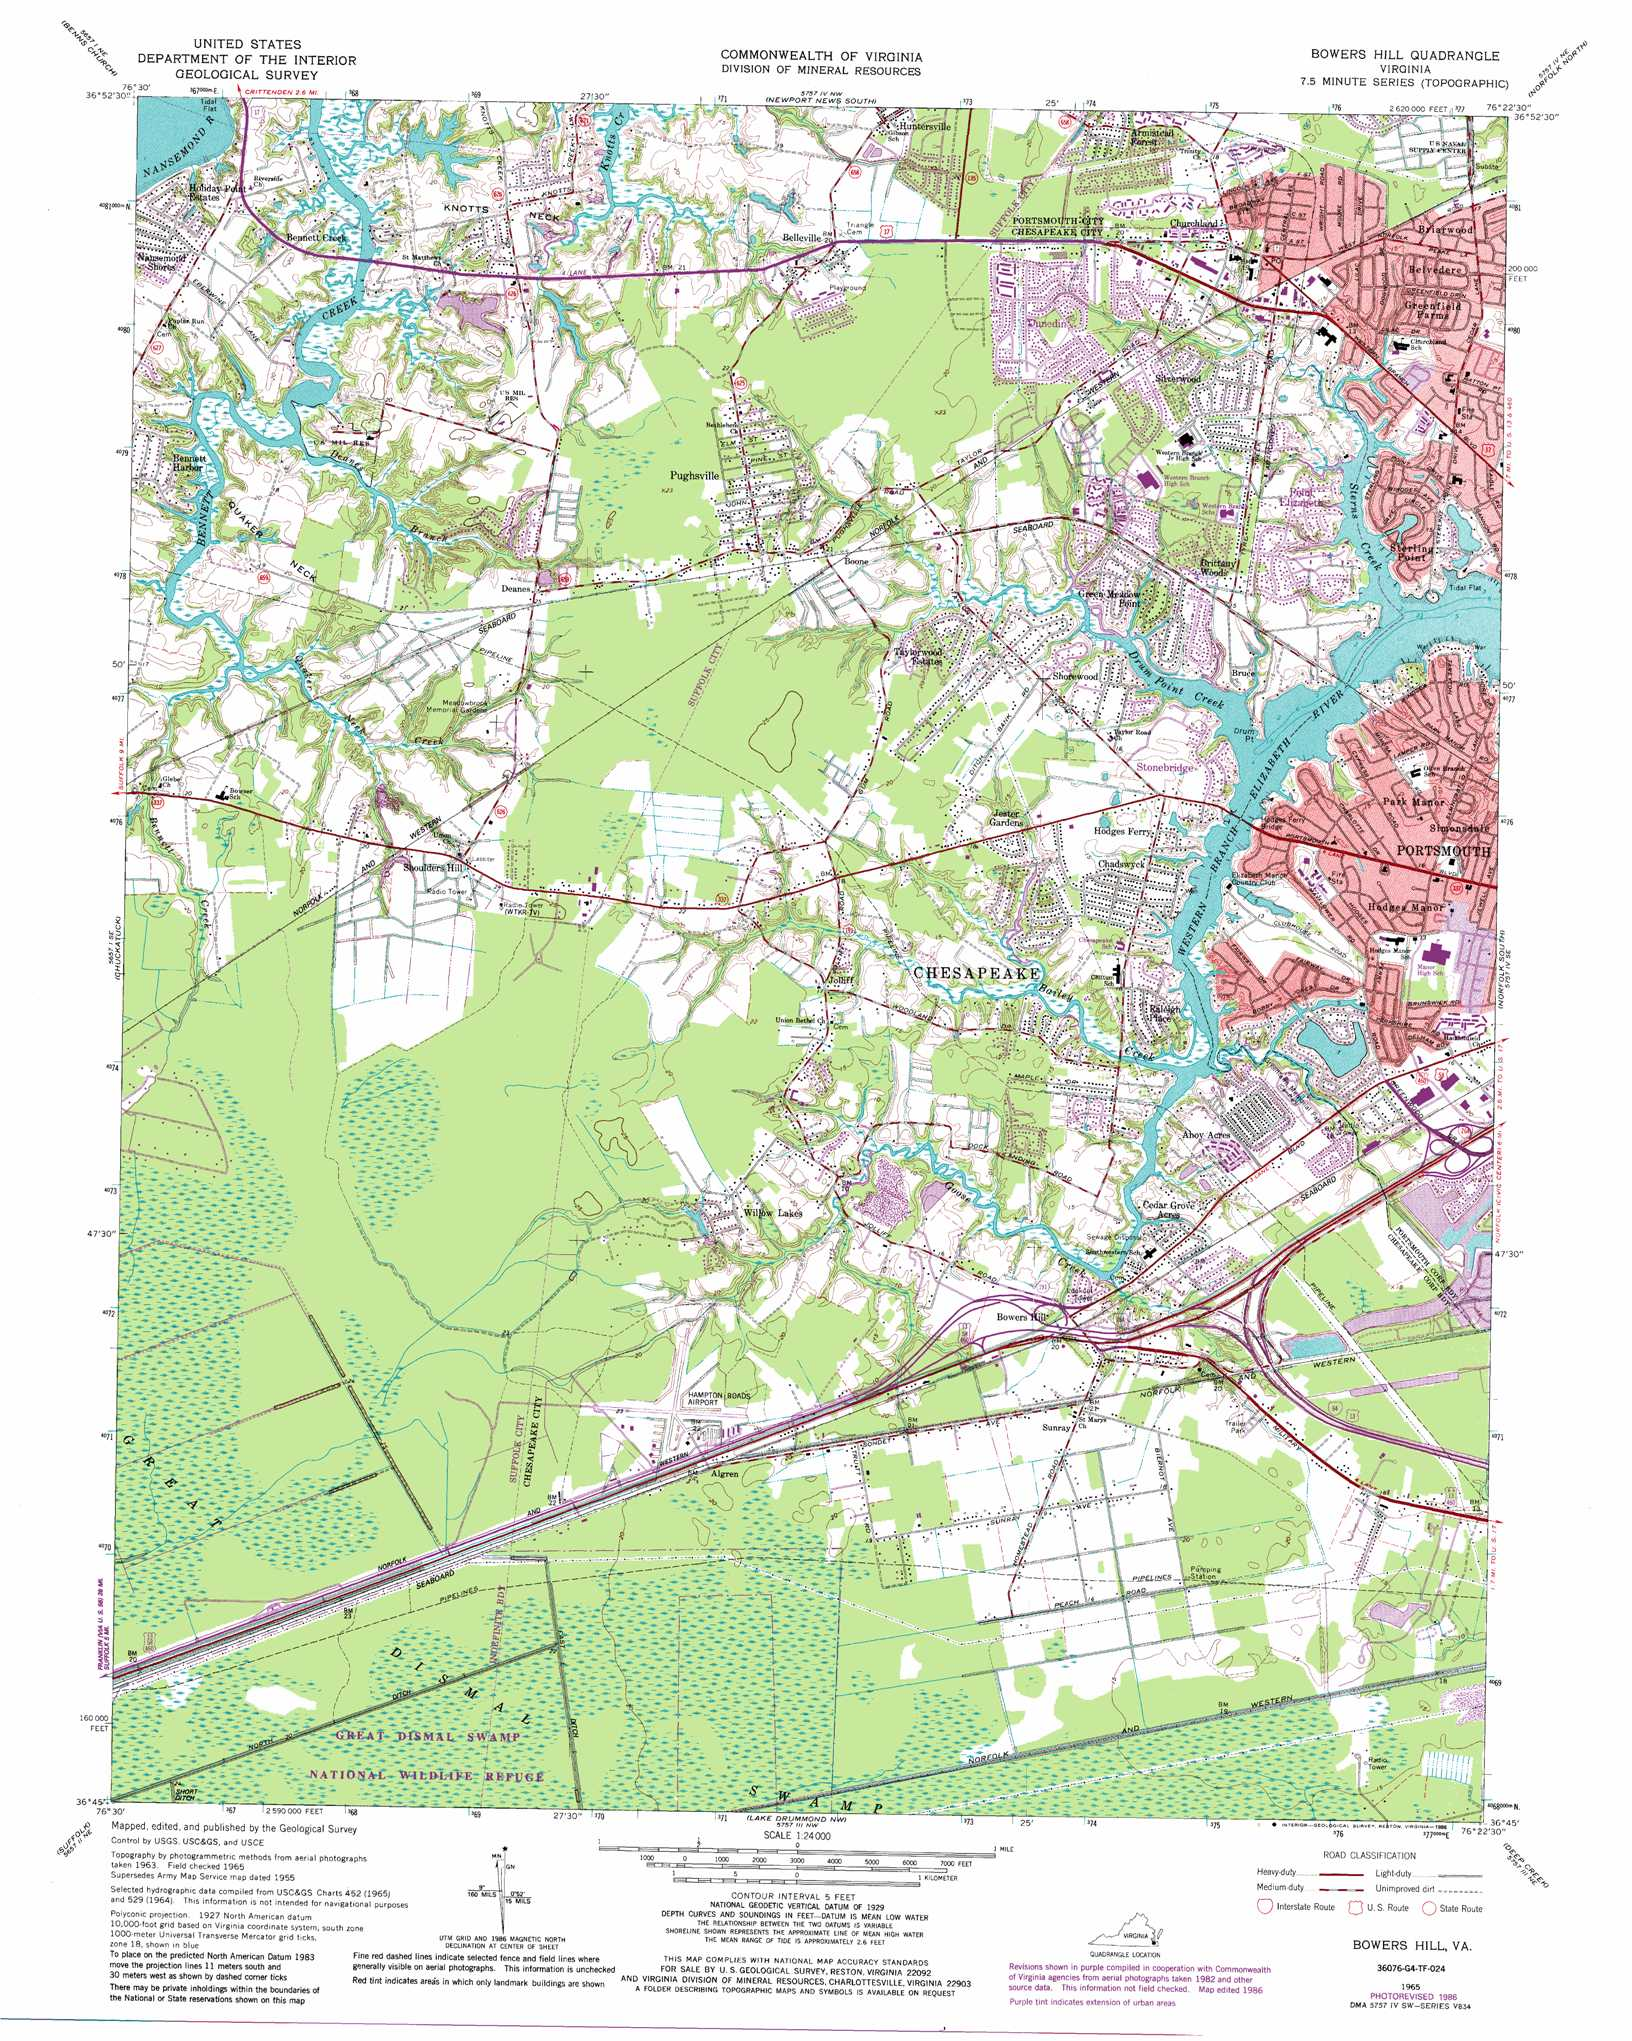 Bowers Hill Topographic Map Va